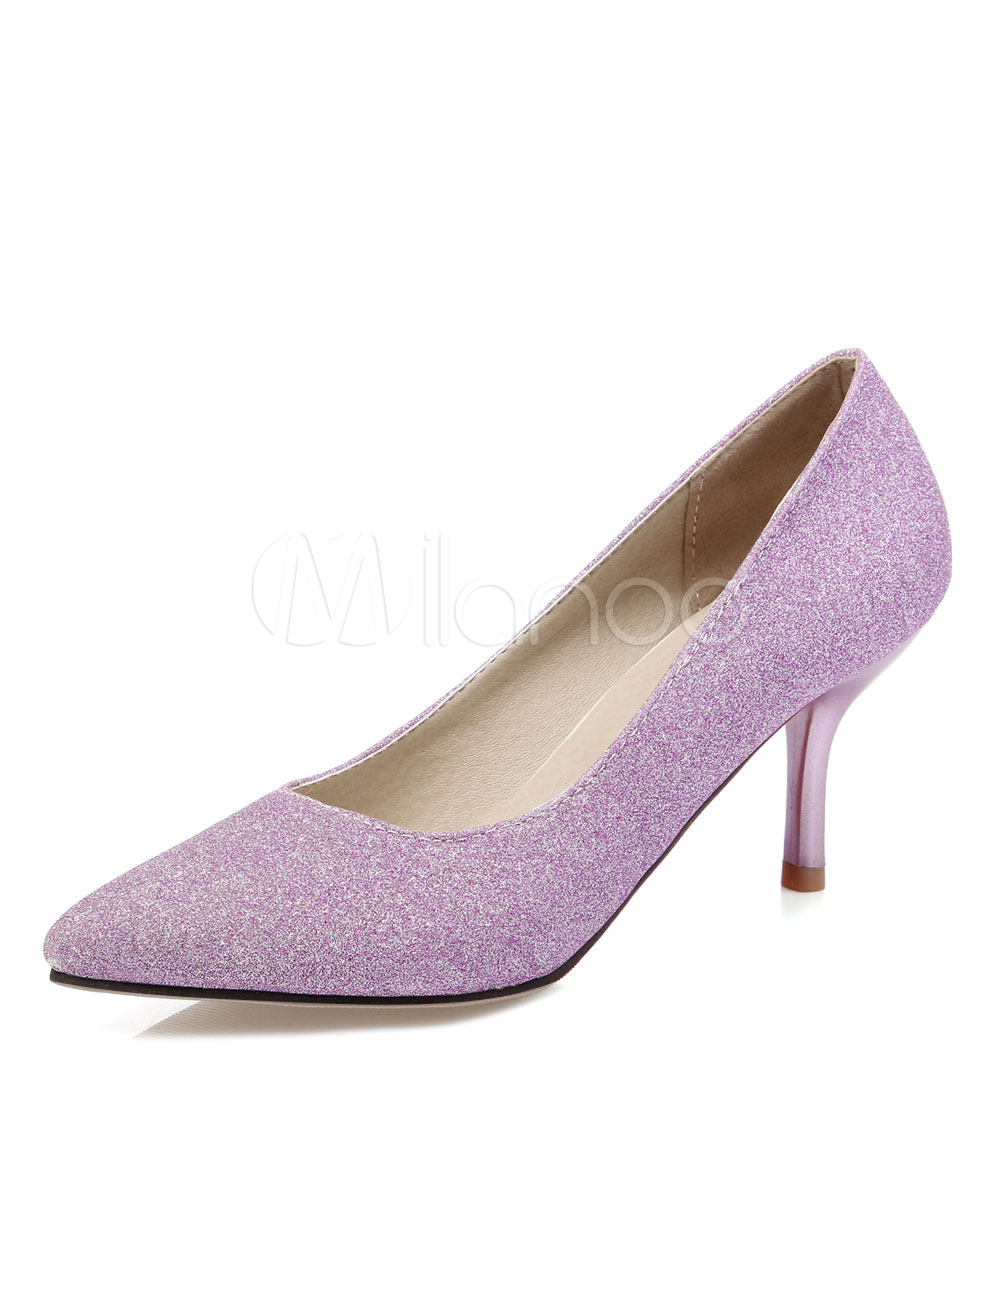 6bf91096c04 Purple Evening Shoes Pointed Toe Stiletto Heel Sequined Pumps For ...